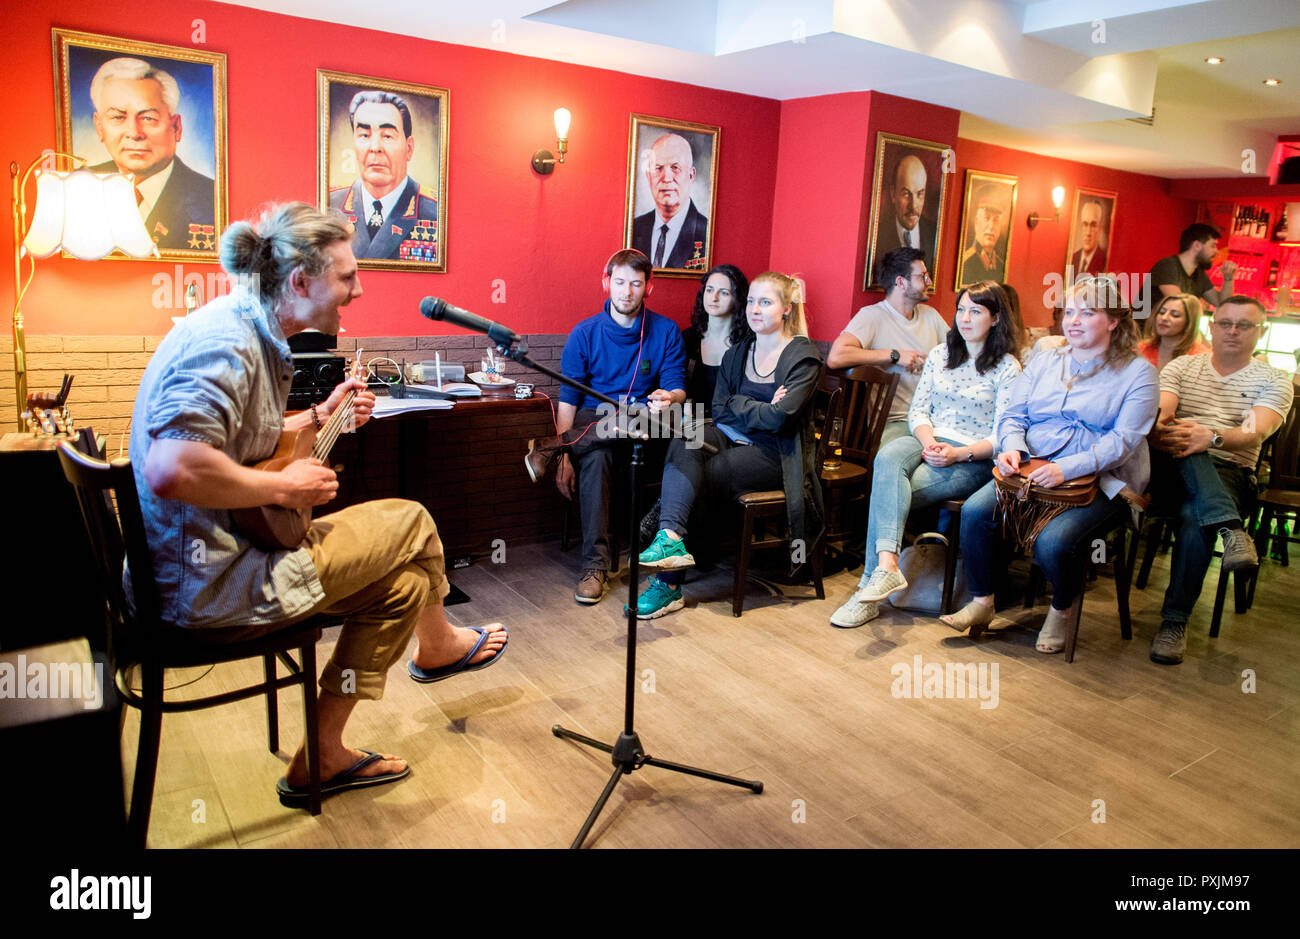 Hanover, Germany. 07th Apr, 2018. The musician Alexander Reyzin performs as part of a poetry slam in the KGB bar, while the portraits of former presidents hang in the background. With many Soviet relics, the bar in the city centre of Hanover is reminiscent of the former USSR. Credit: Hauke-Christian Dittrich/dpa/Alamy Live News - Stock Image